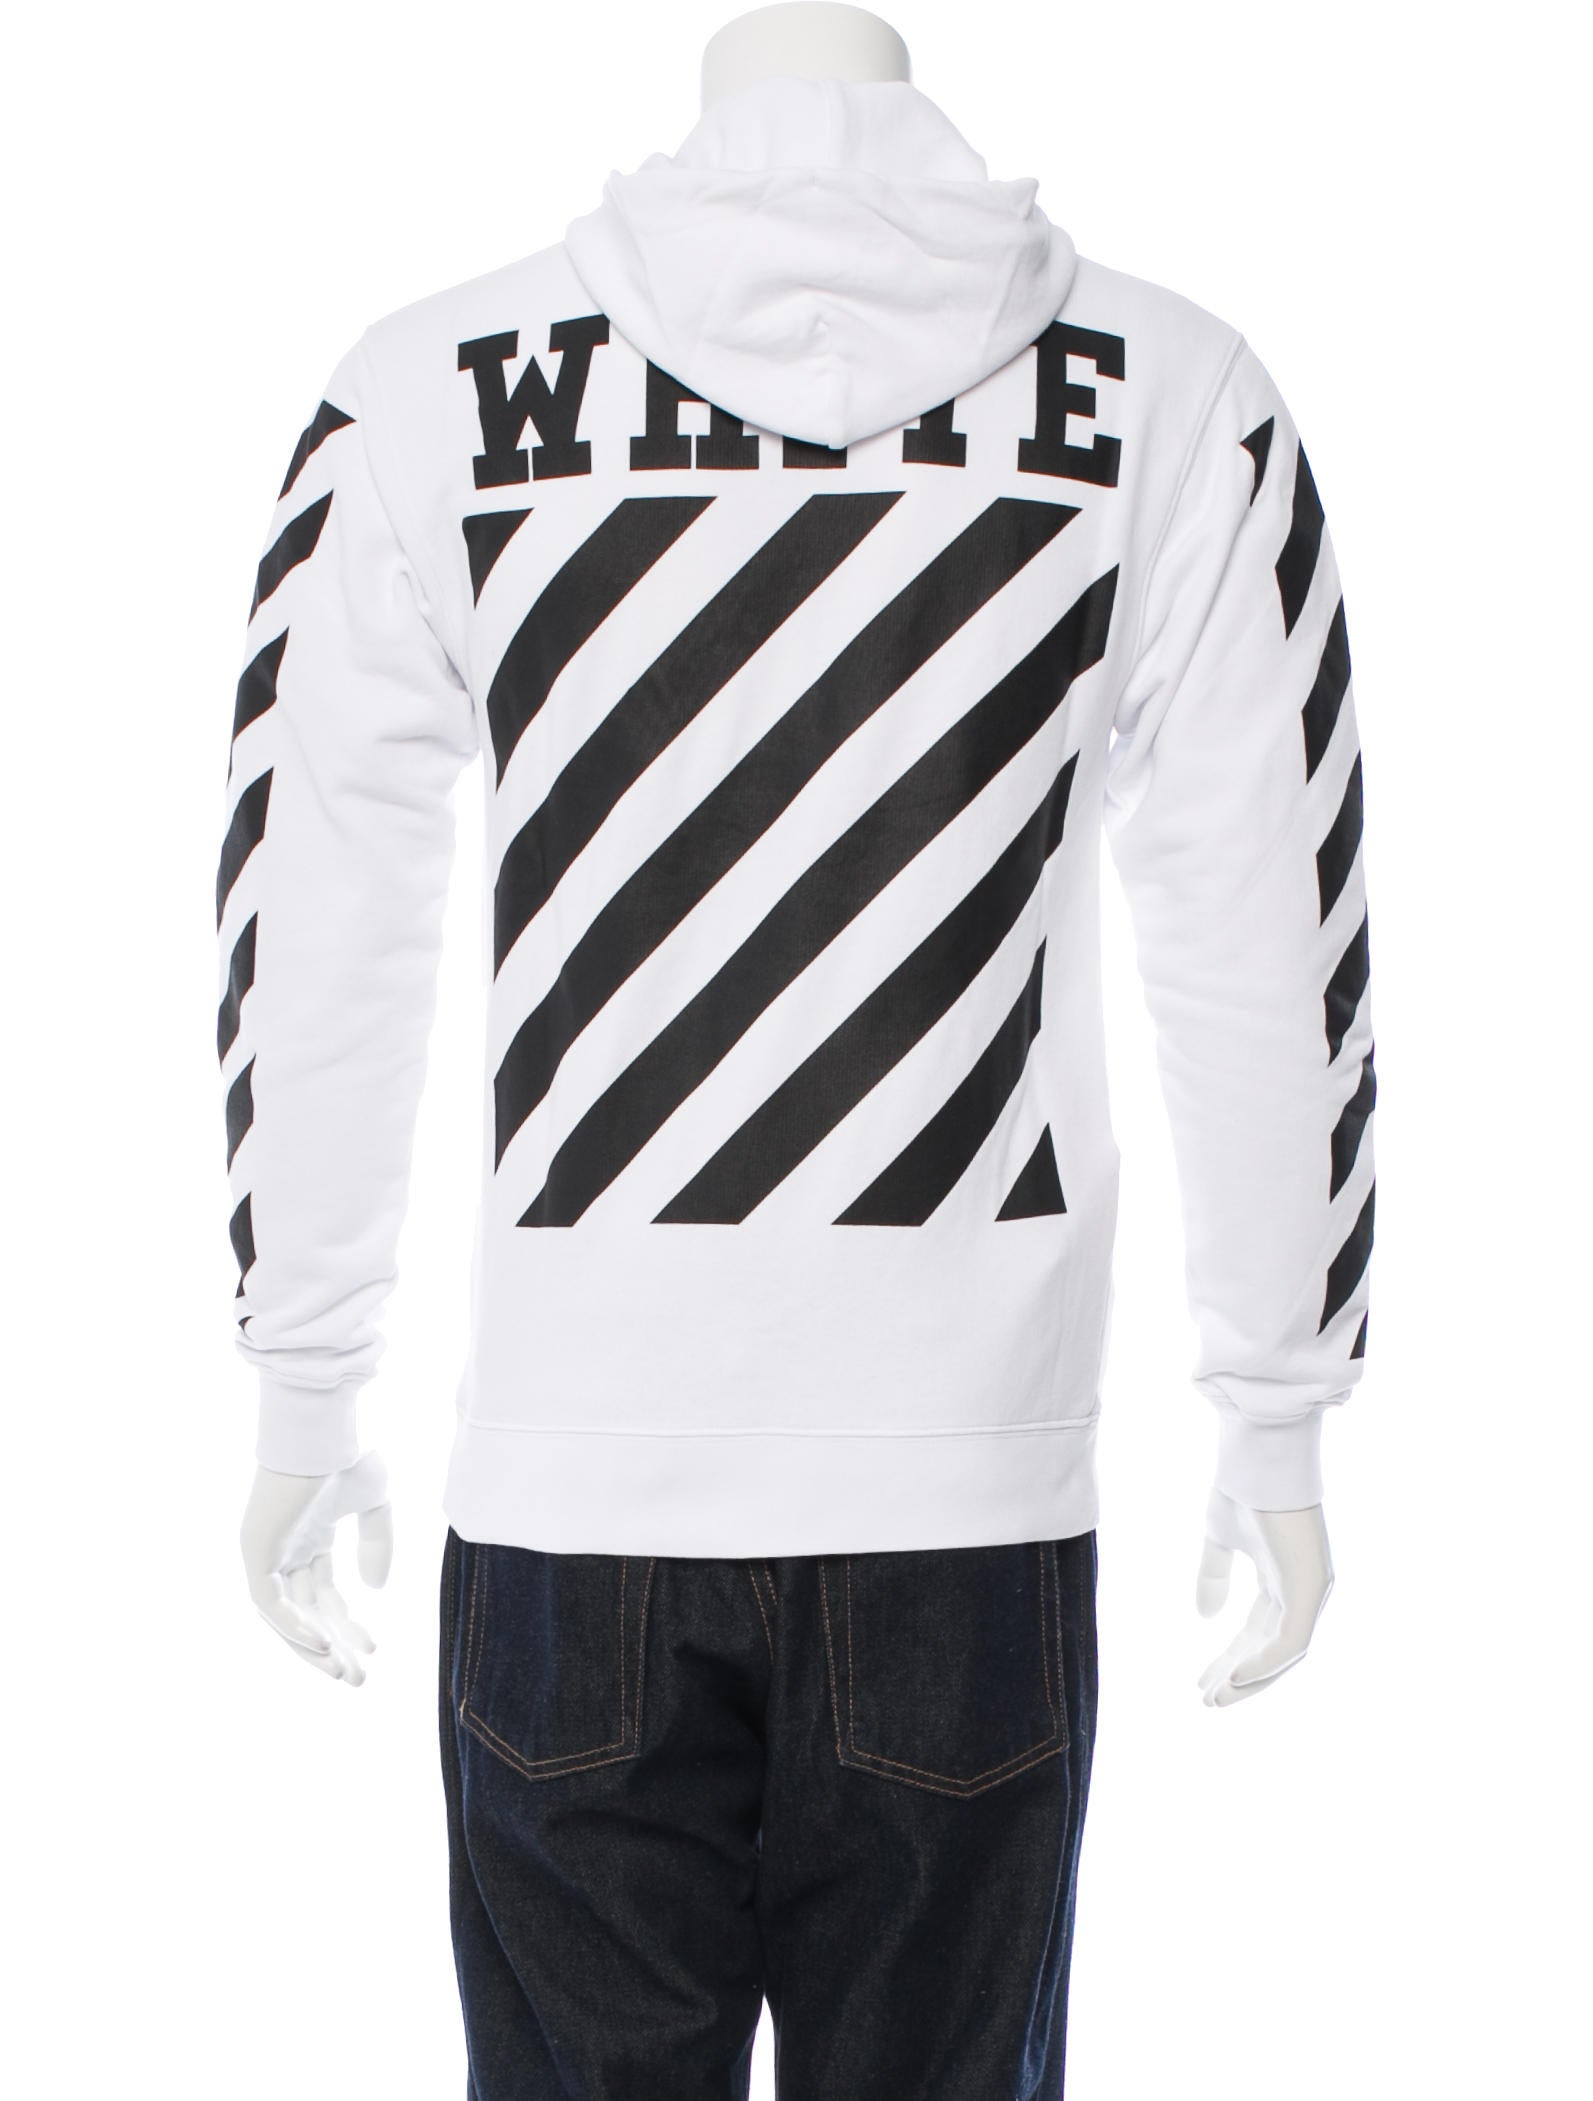 Off-White New Caravaggio Hoodie W/ Tags - Clothing - OFF20069 | The RealReal